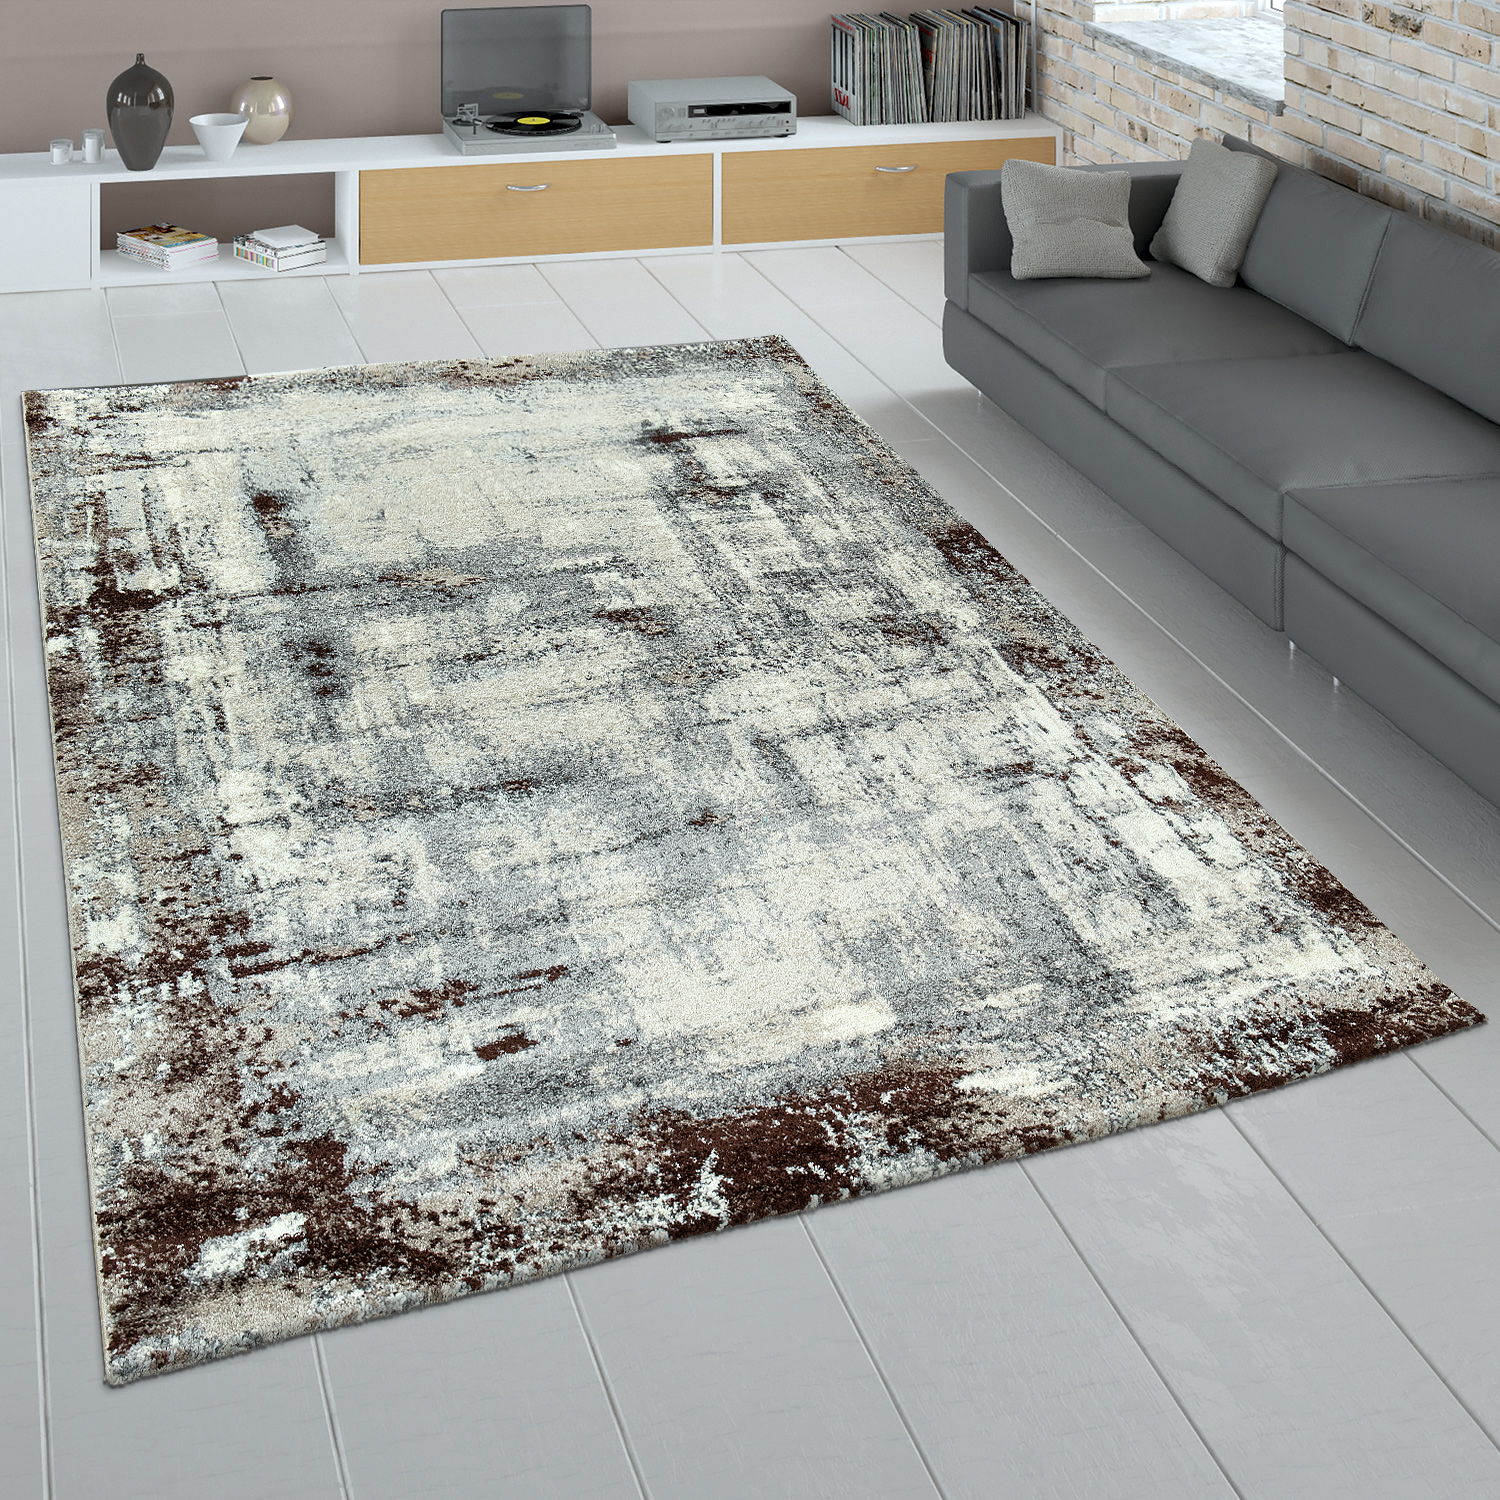 Rug Living Room Grey Brown Used Look Abstract Painting Design